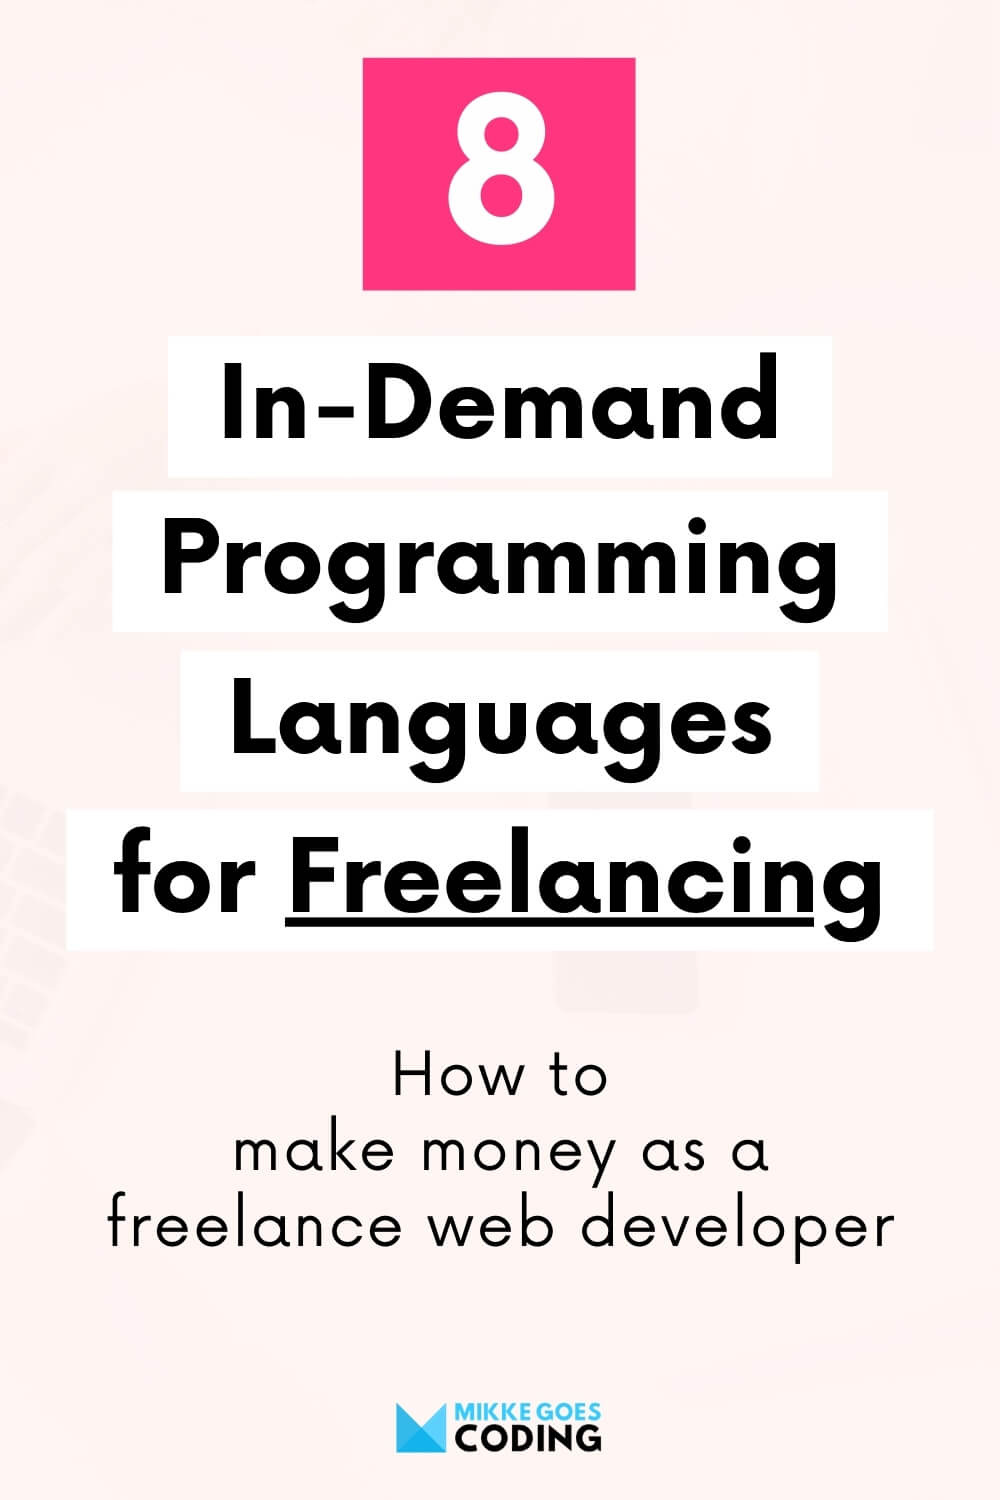 Top programming languages and tools for freelance web developers - Make money programming